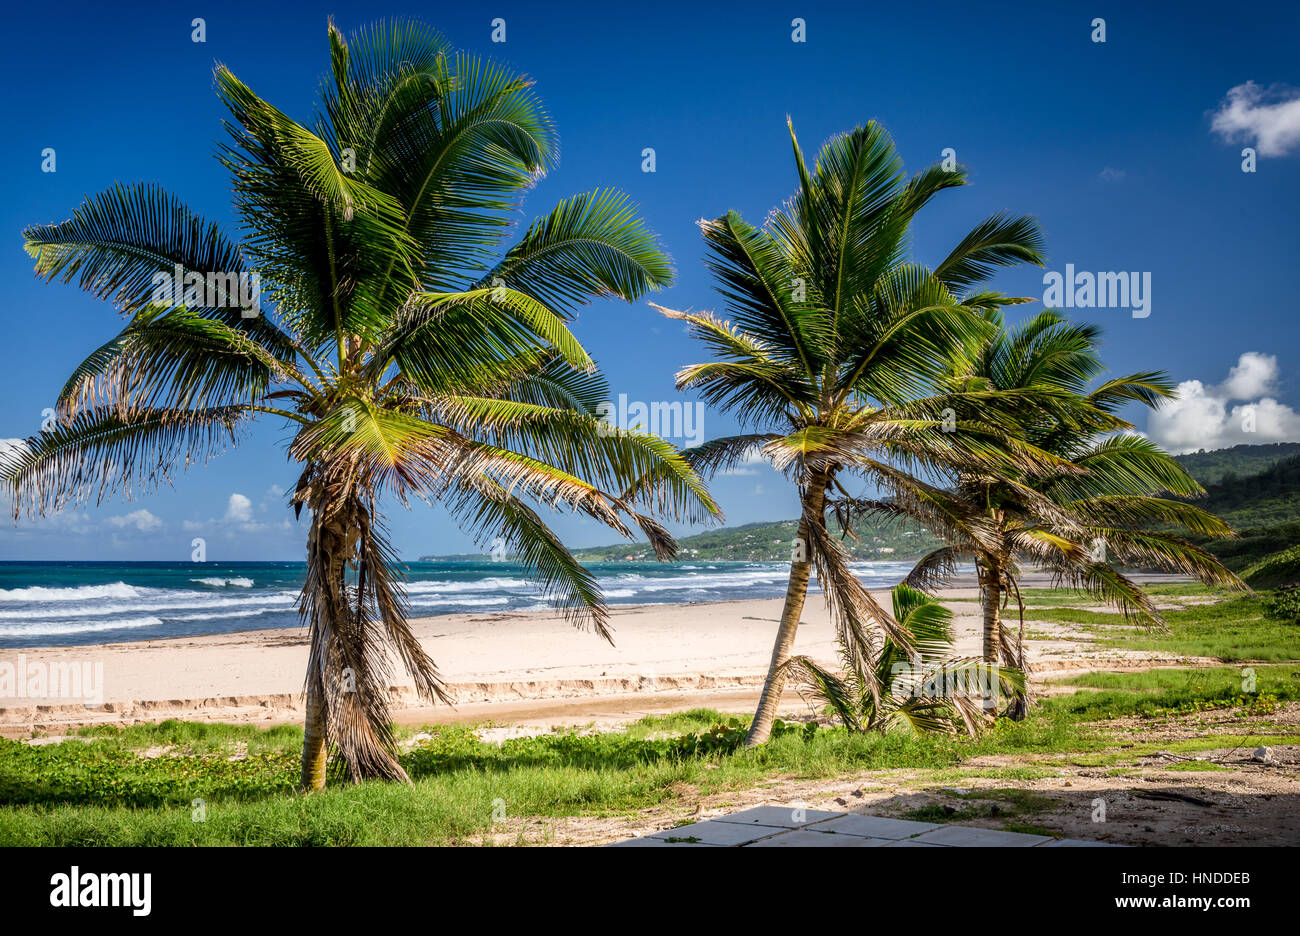 Palm trees on a beach in Barbados - Stock Image